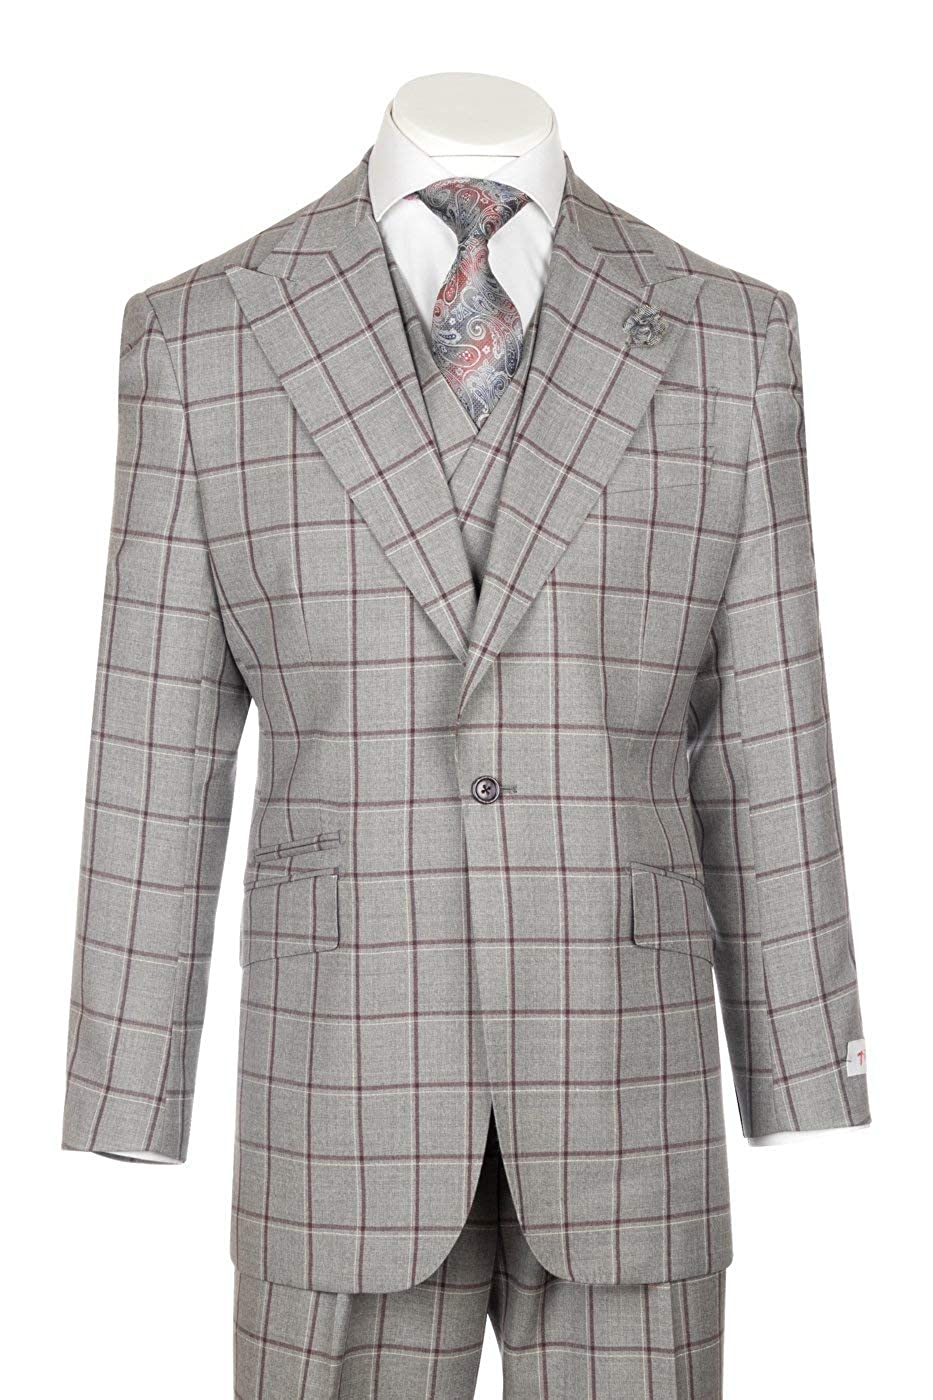 Men's Vintage Style Suits, Classic Suits Tiglio New Rosso Light Gray with Burgundy and White Windowpane Wide Leg Pure Wool Suit & Vest Rosso CG8802F/511/4 $399.00 AT vintagedancer.com